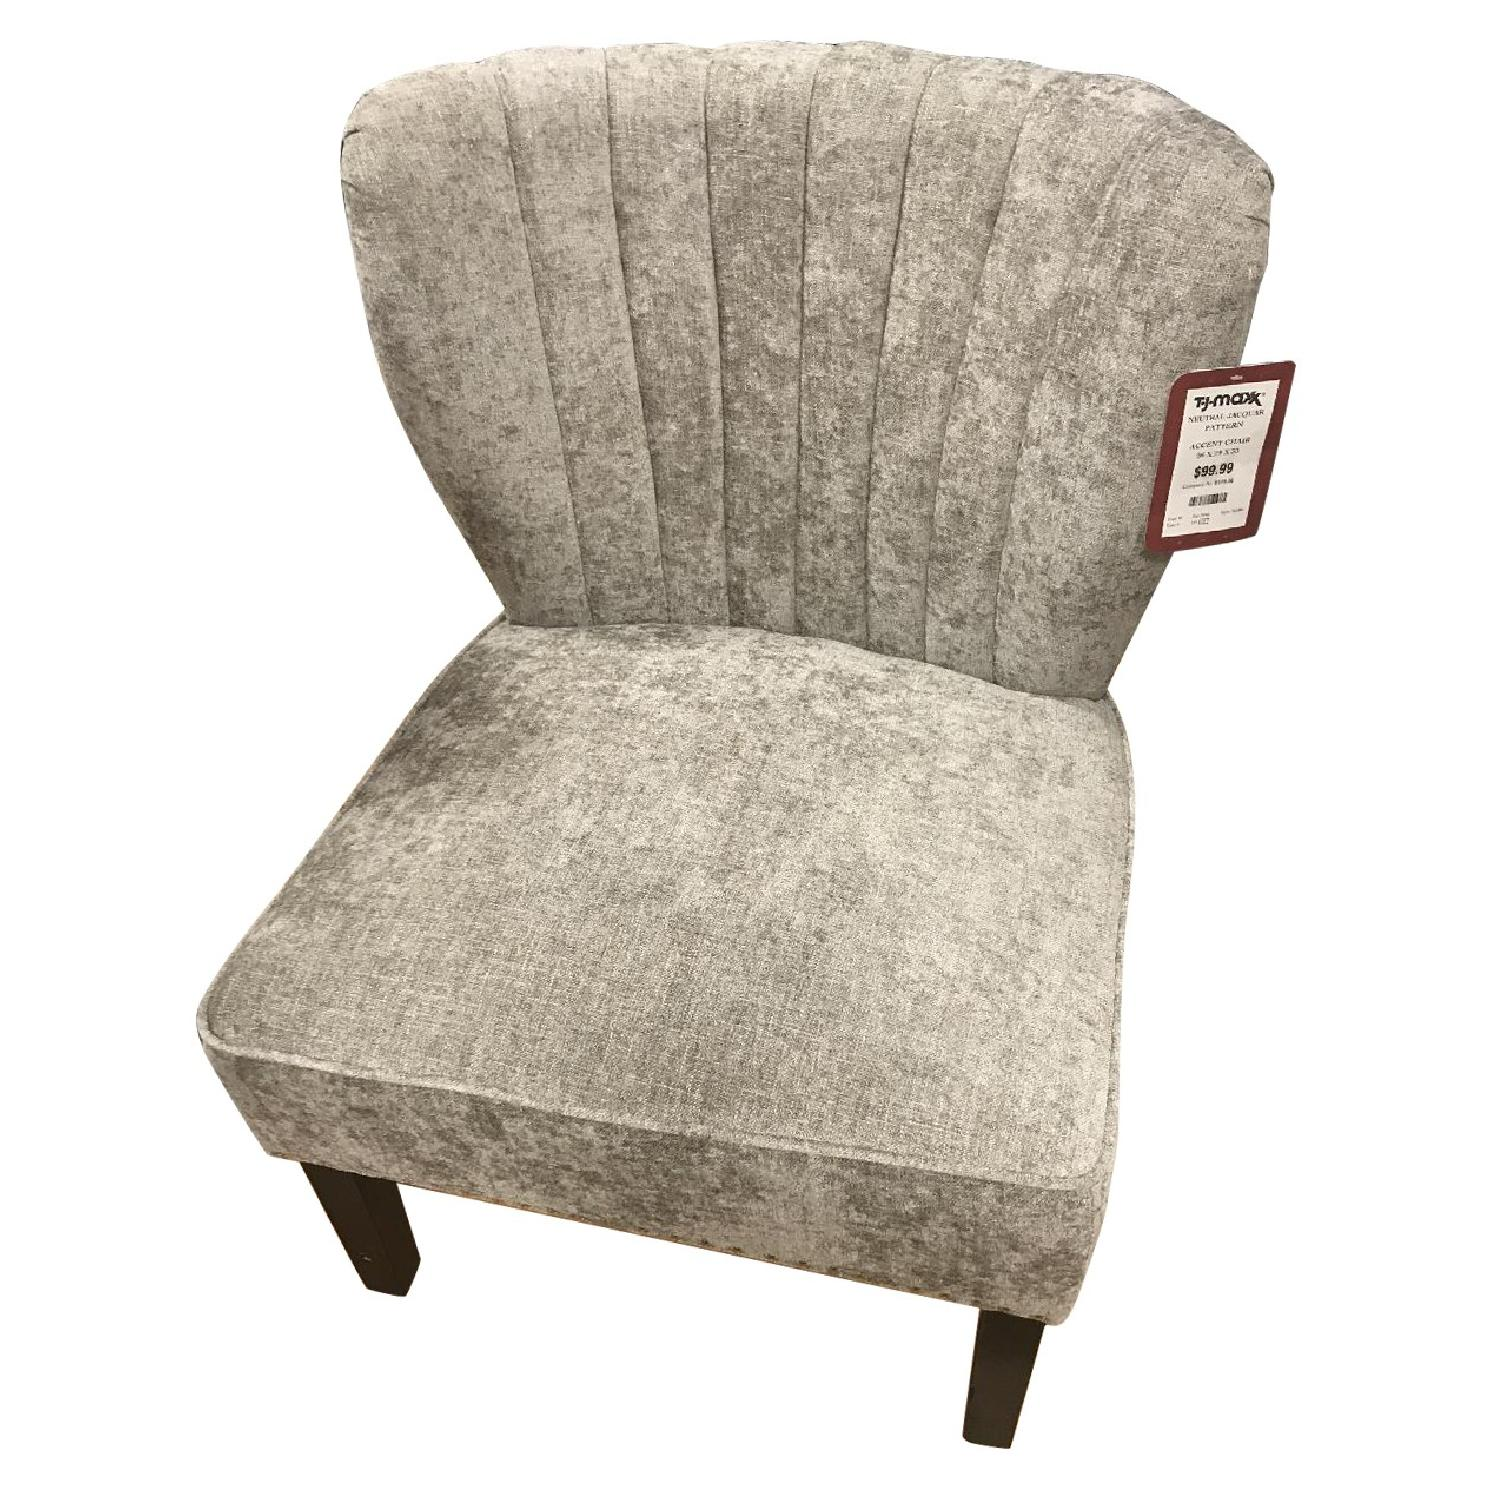 Neutral Accent Chair - image-0